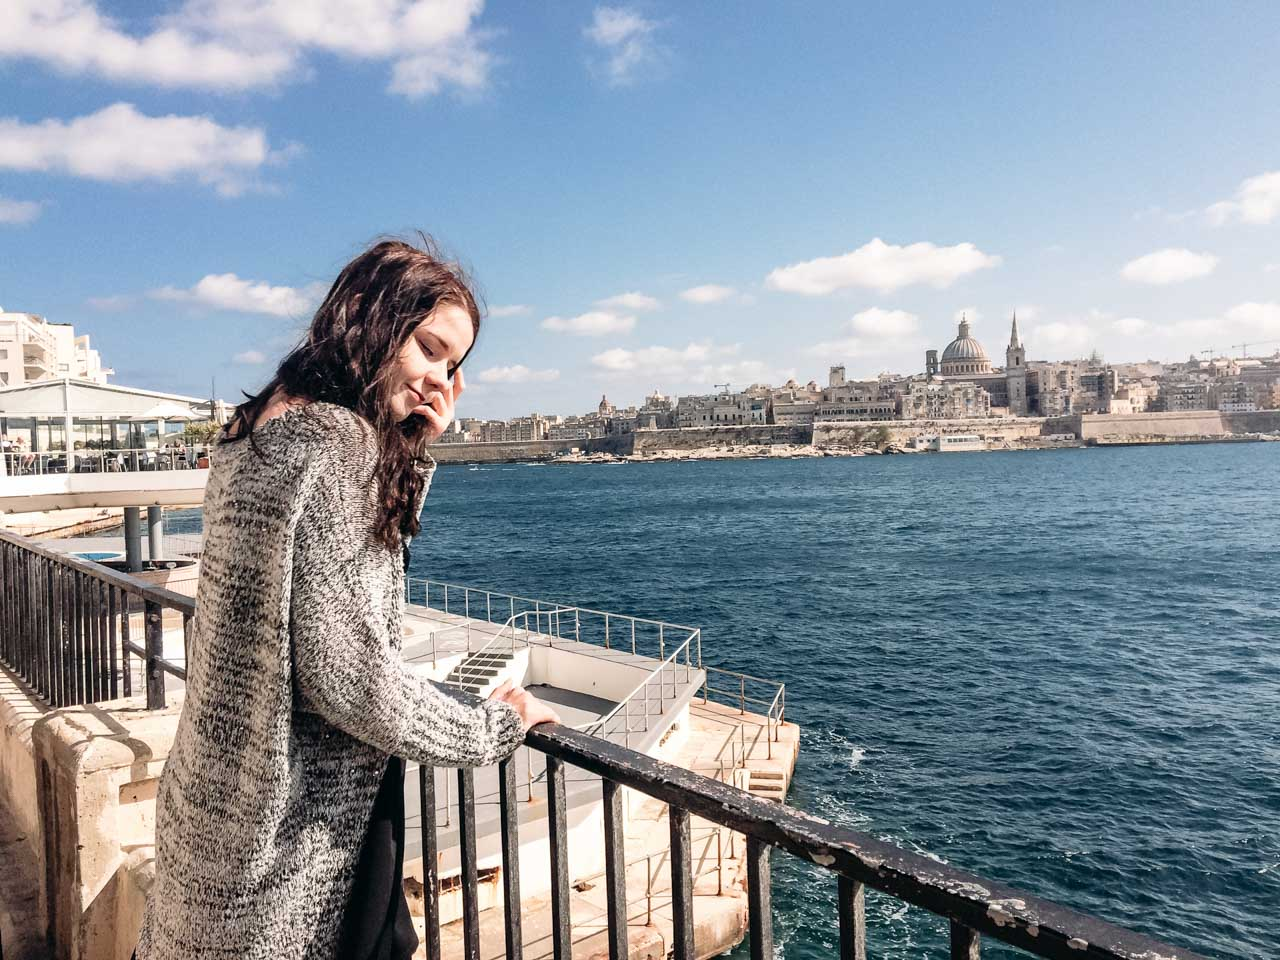 A girl standing on the promenade in Sliema, Malta with the Valletta skyline in the background